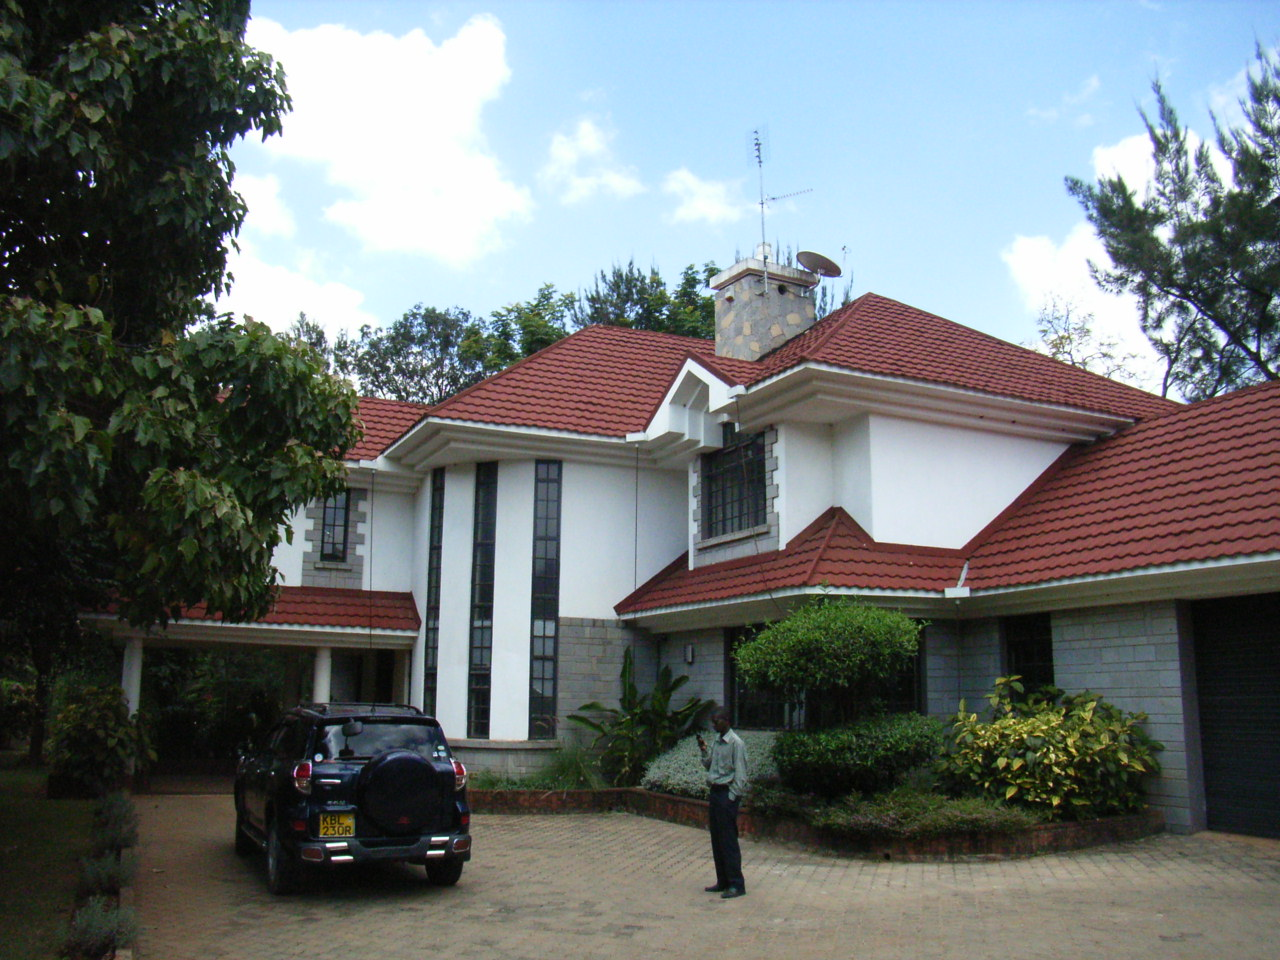 rent house in tanzania arusha rent houses  houses for sale vacation travel  june 2015